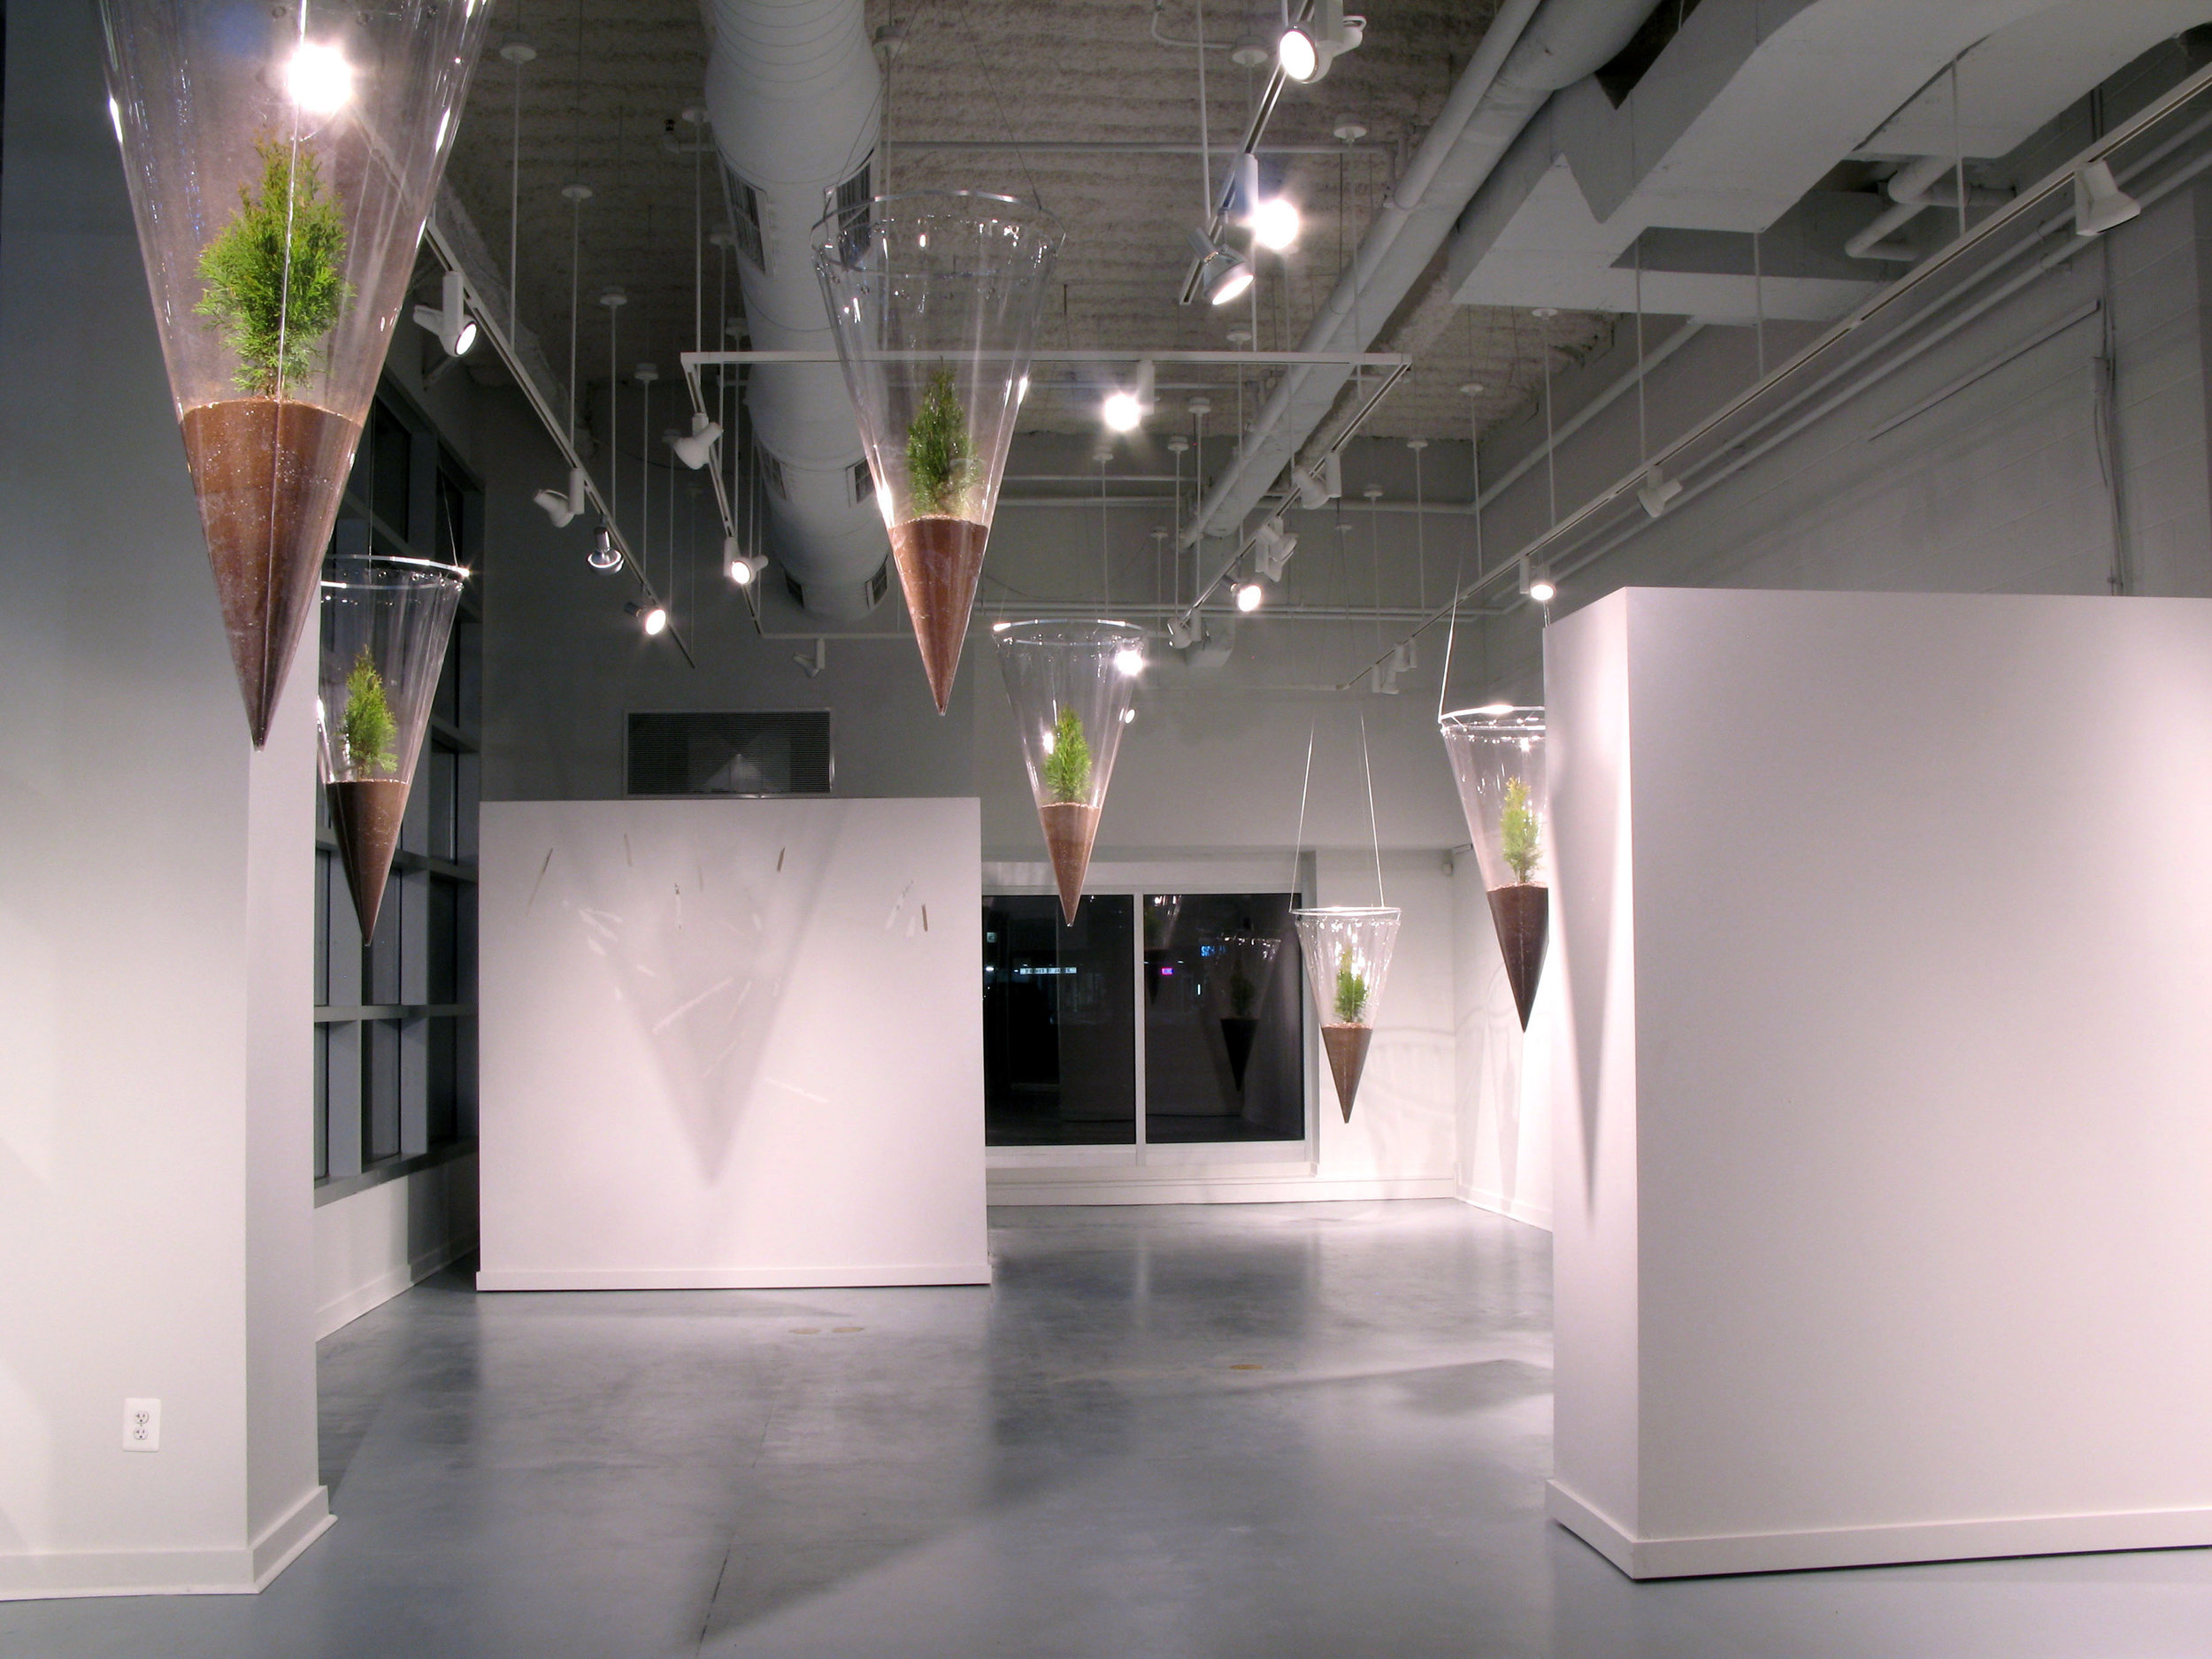 Descent  / 2012 / Clear vinyl, aluminum, grommets, monofilament, soil, cypress trees / 16' x 22' x 51'